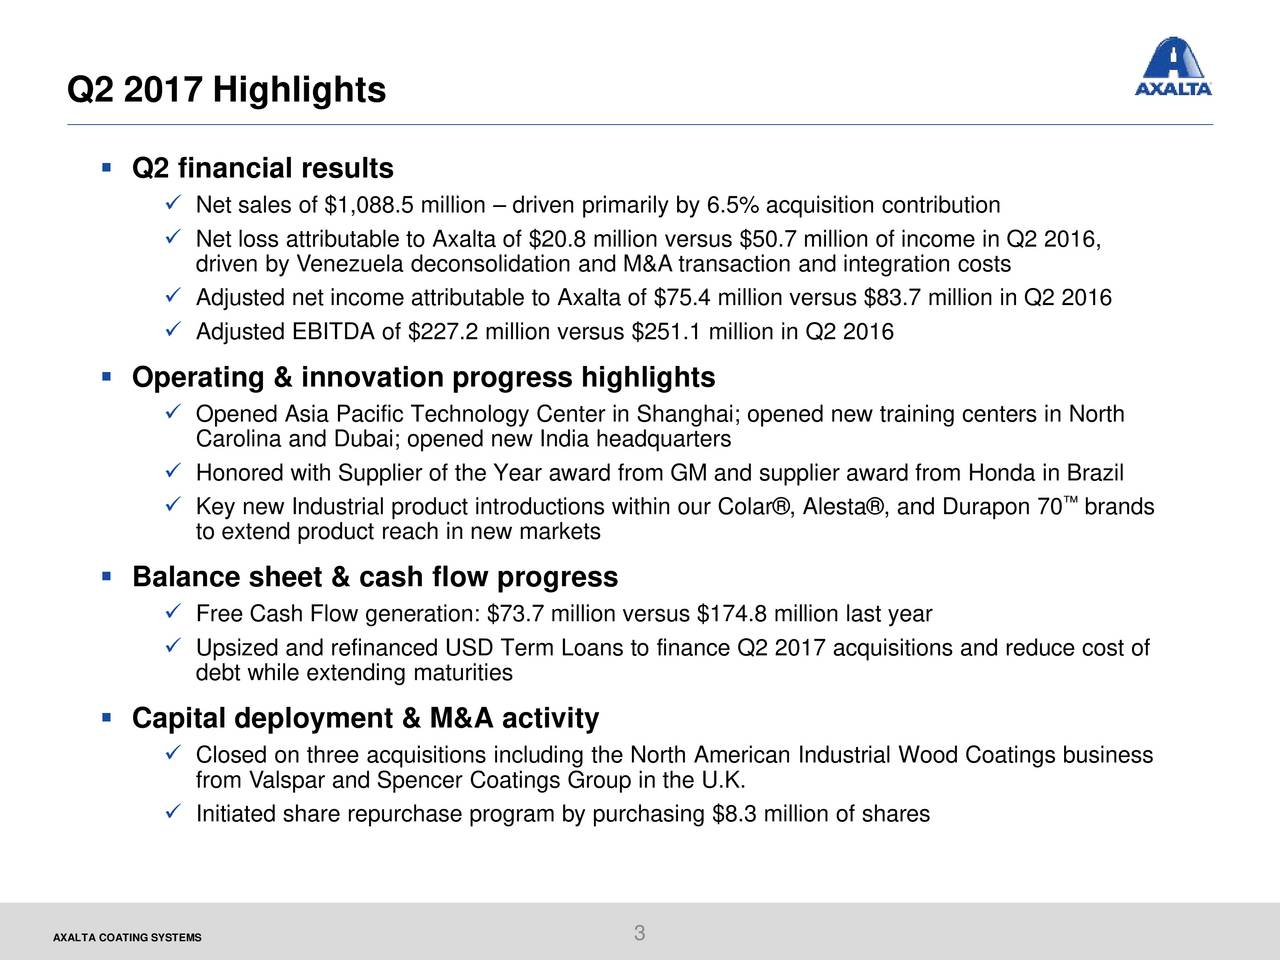 Q2 financial results Net sales of $1,088.5 million  driven primarily by 6.5% acquisition contribution Net loss attributable to Axalta of $20.8 million versus $50.7 million of income in Q2 2016, driven by Venezuela deconsolidation and M&A transaction and integration costs Adjusted net income attributable to Axalta of $75.4 million versus $83.7 million in Q2 2016 Adjusted EBITDA of $227.2 million versus $251.1 million in Q2 2016 Operating & innovation progress highlights Opened Asia Pacific Technology Center in Shanghai; opened new training c enters in North Carolina and Dubai; opened new India headquarters Honored with Supplier of the Year award from GM and supplier award from Honda in Brazil Key new Industrial product introductions within our Colar, Alesta , and Durapon 70 brands to extend product reach in new markets Balance sheet & cash flow progress Free Cash Flow generation: $73.7 million versus $174.8 million last year Upsized and refinanced USD Term Loans to finance Q2 2017 acquisitions an d reduce cost of debt while extending maturities Capital deployment & M&A activity Closed on three acquisitions including the North American Industrial Woo d Coatings business from Valspar and Spencer Coatings Group in the U.K. Initiated share repurchase program by purchasing $8.3 million of shares AXALTA COATING SYSTEMS 3